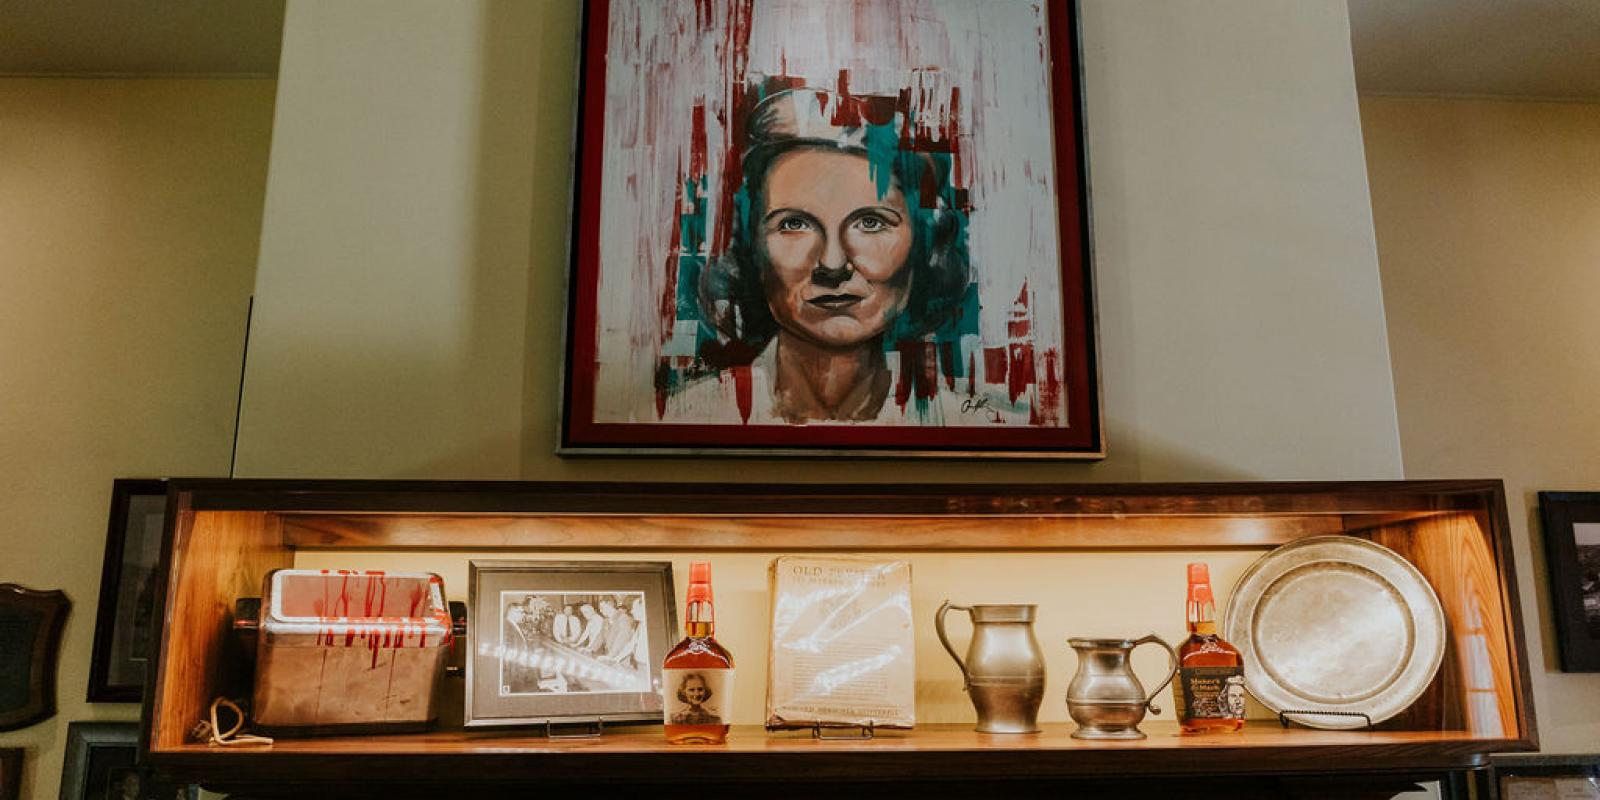 Whisky parlor adorned with family heirlooms